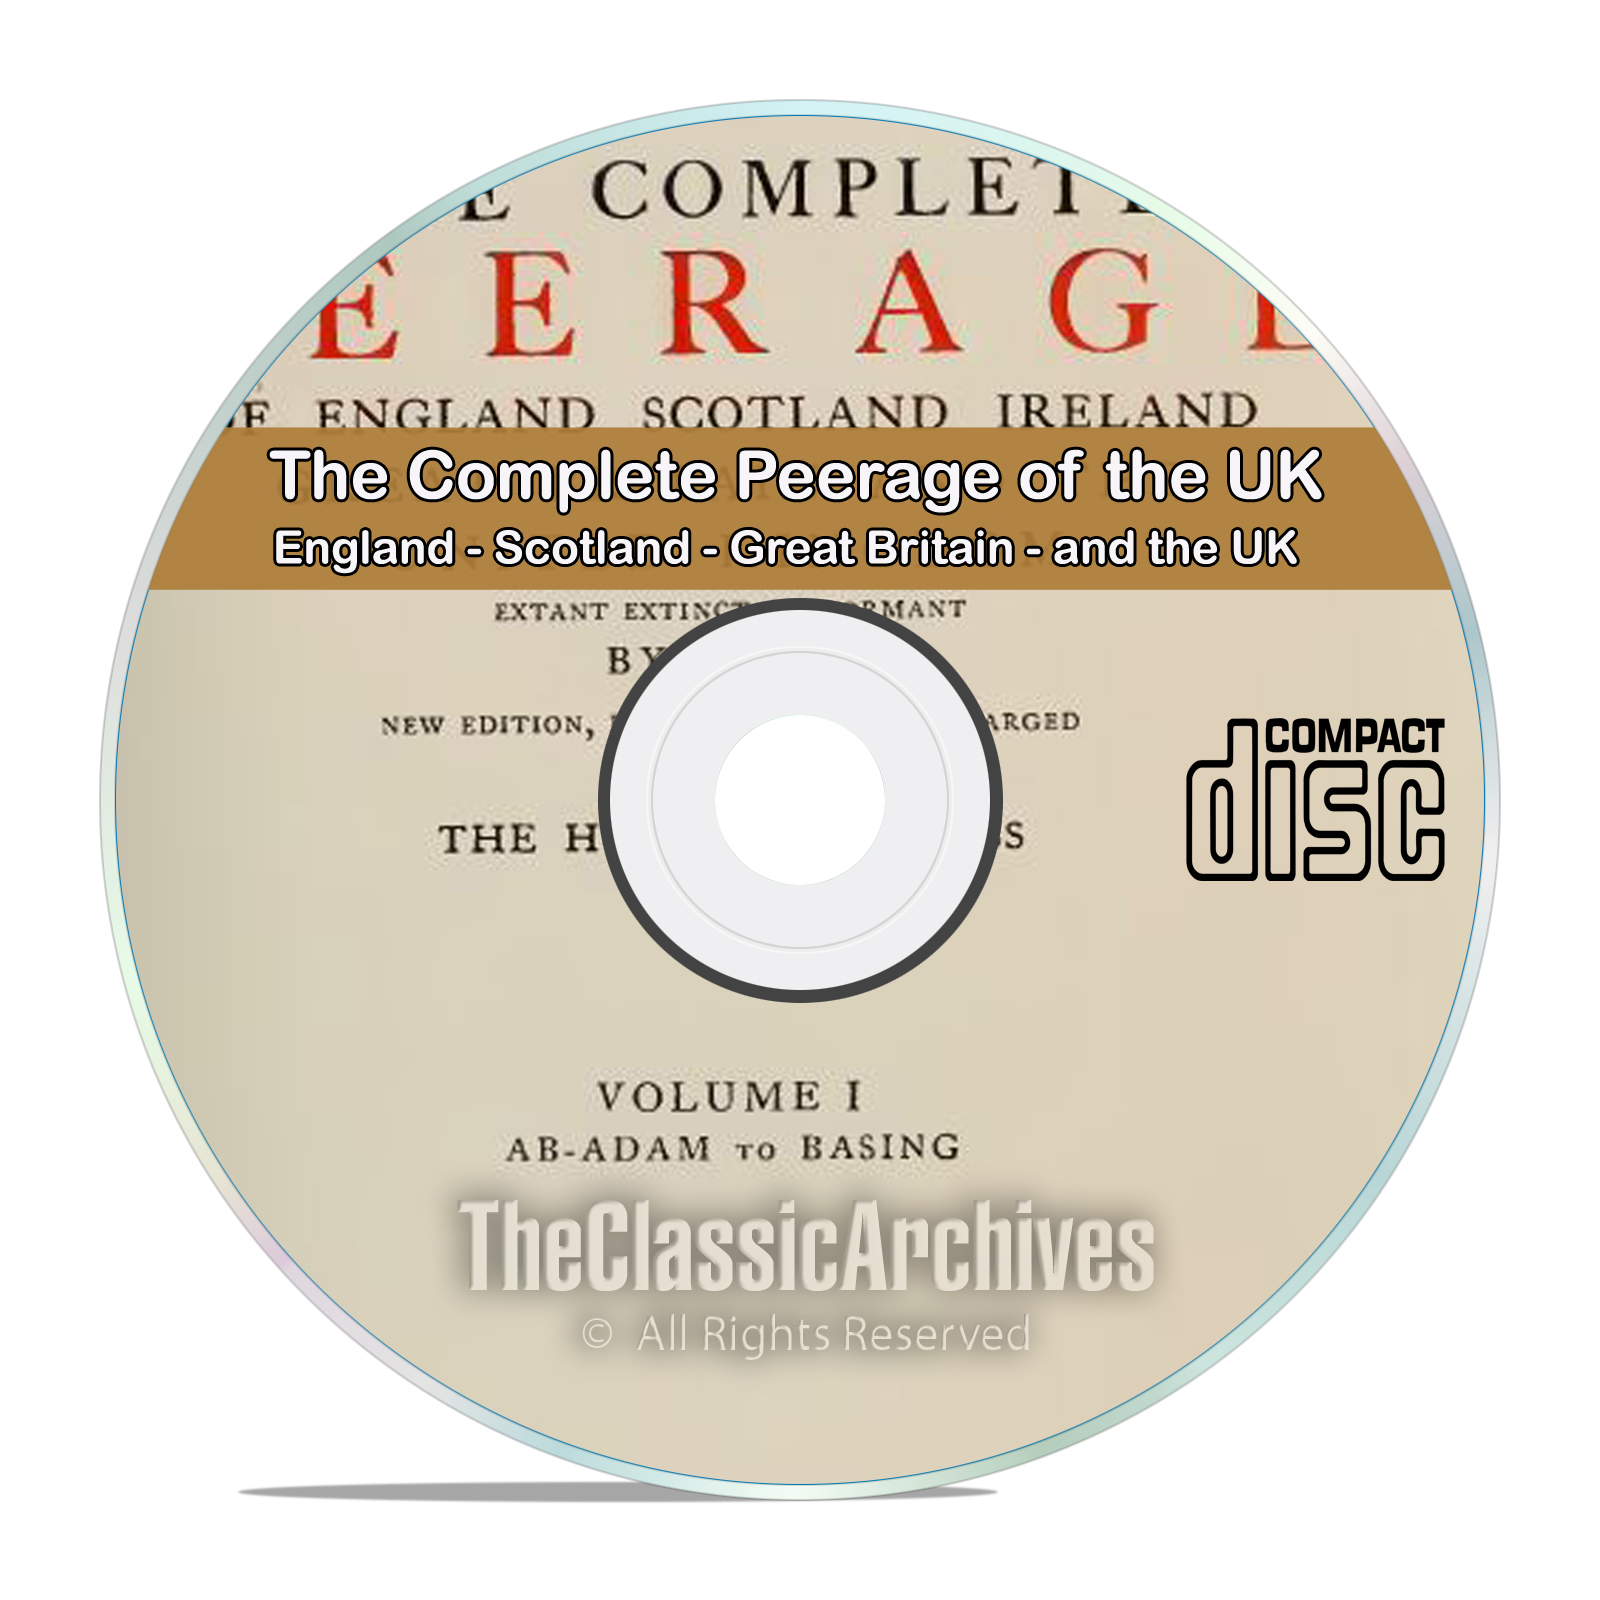 The Complete Peerage of England, Scotland, Ireland, Great Britain, UK CD